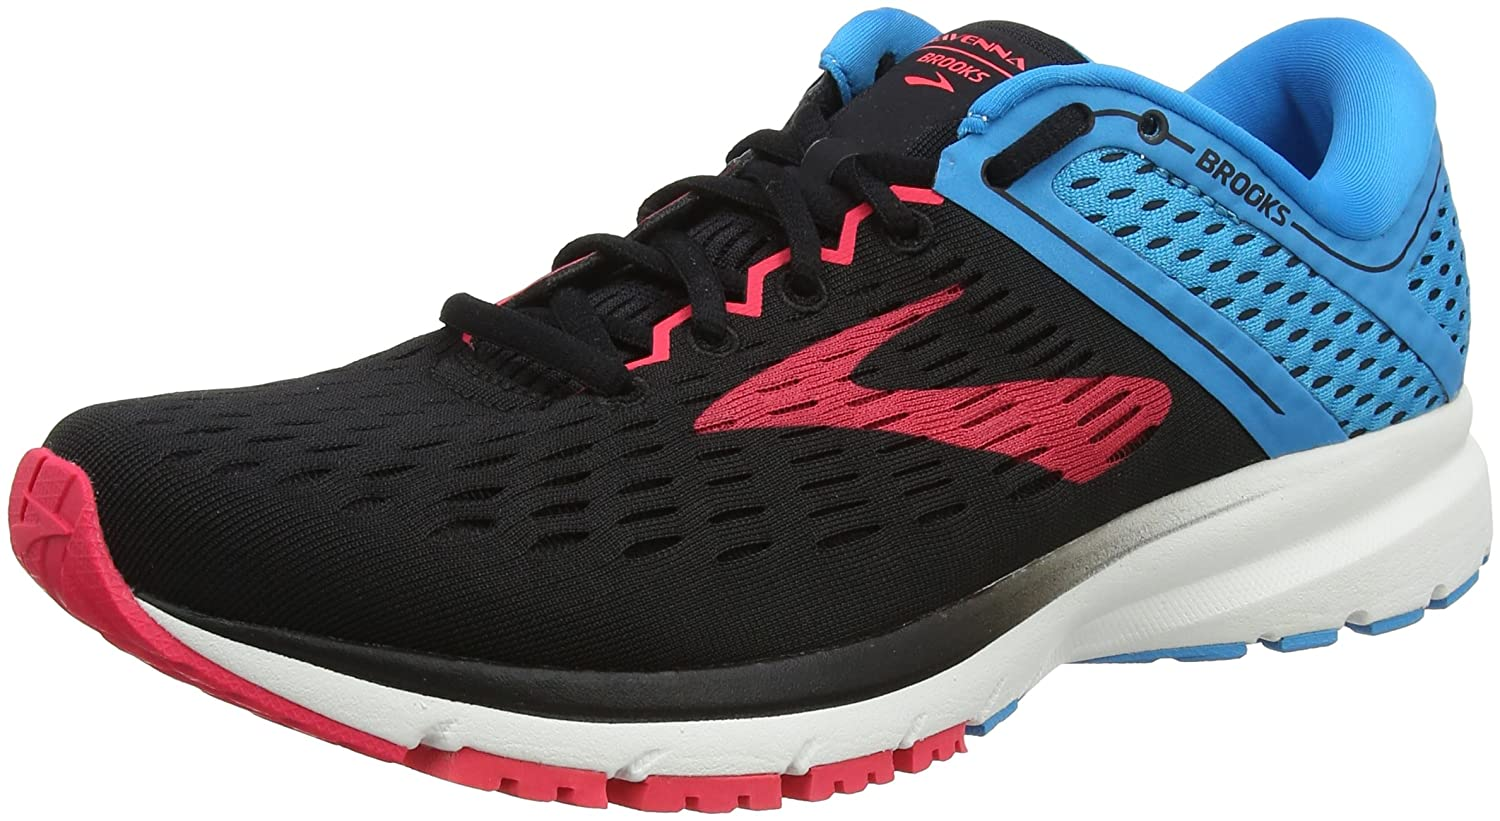 Brooks Womens Ravenna 9 B0716PZP2V 9.5 B(M) US|Black/Blue/Pink